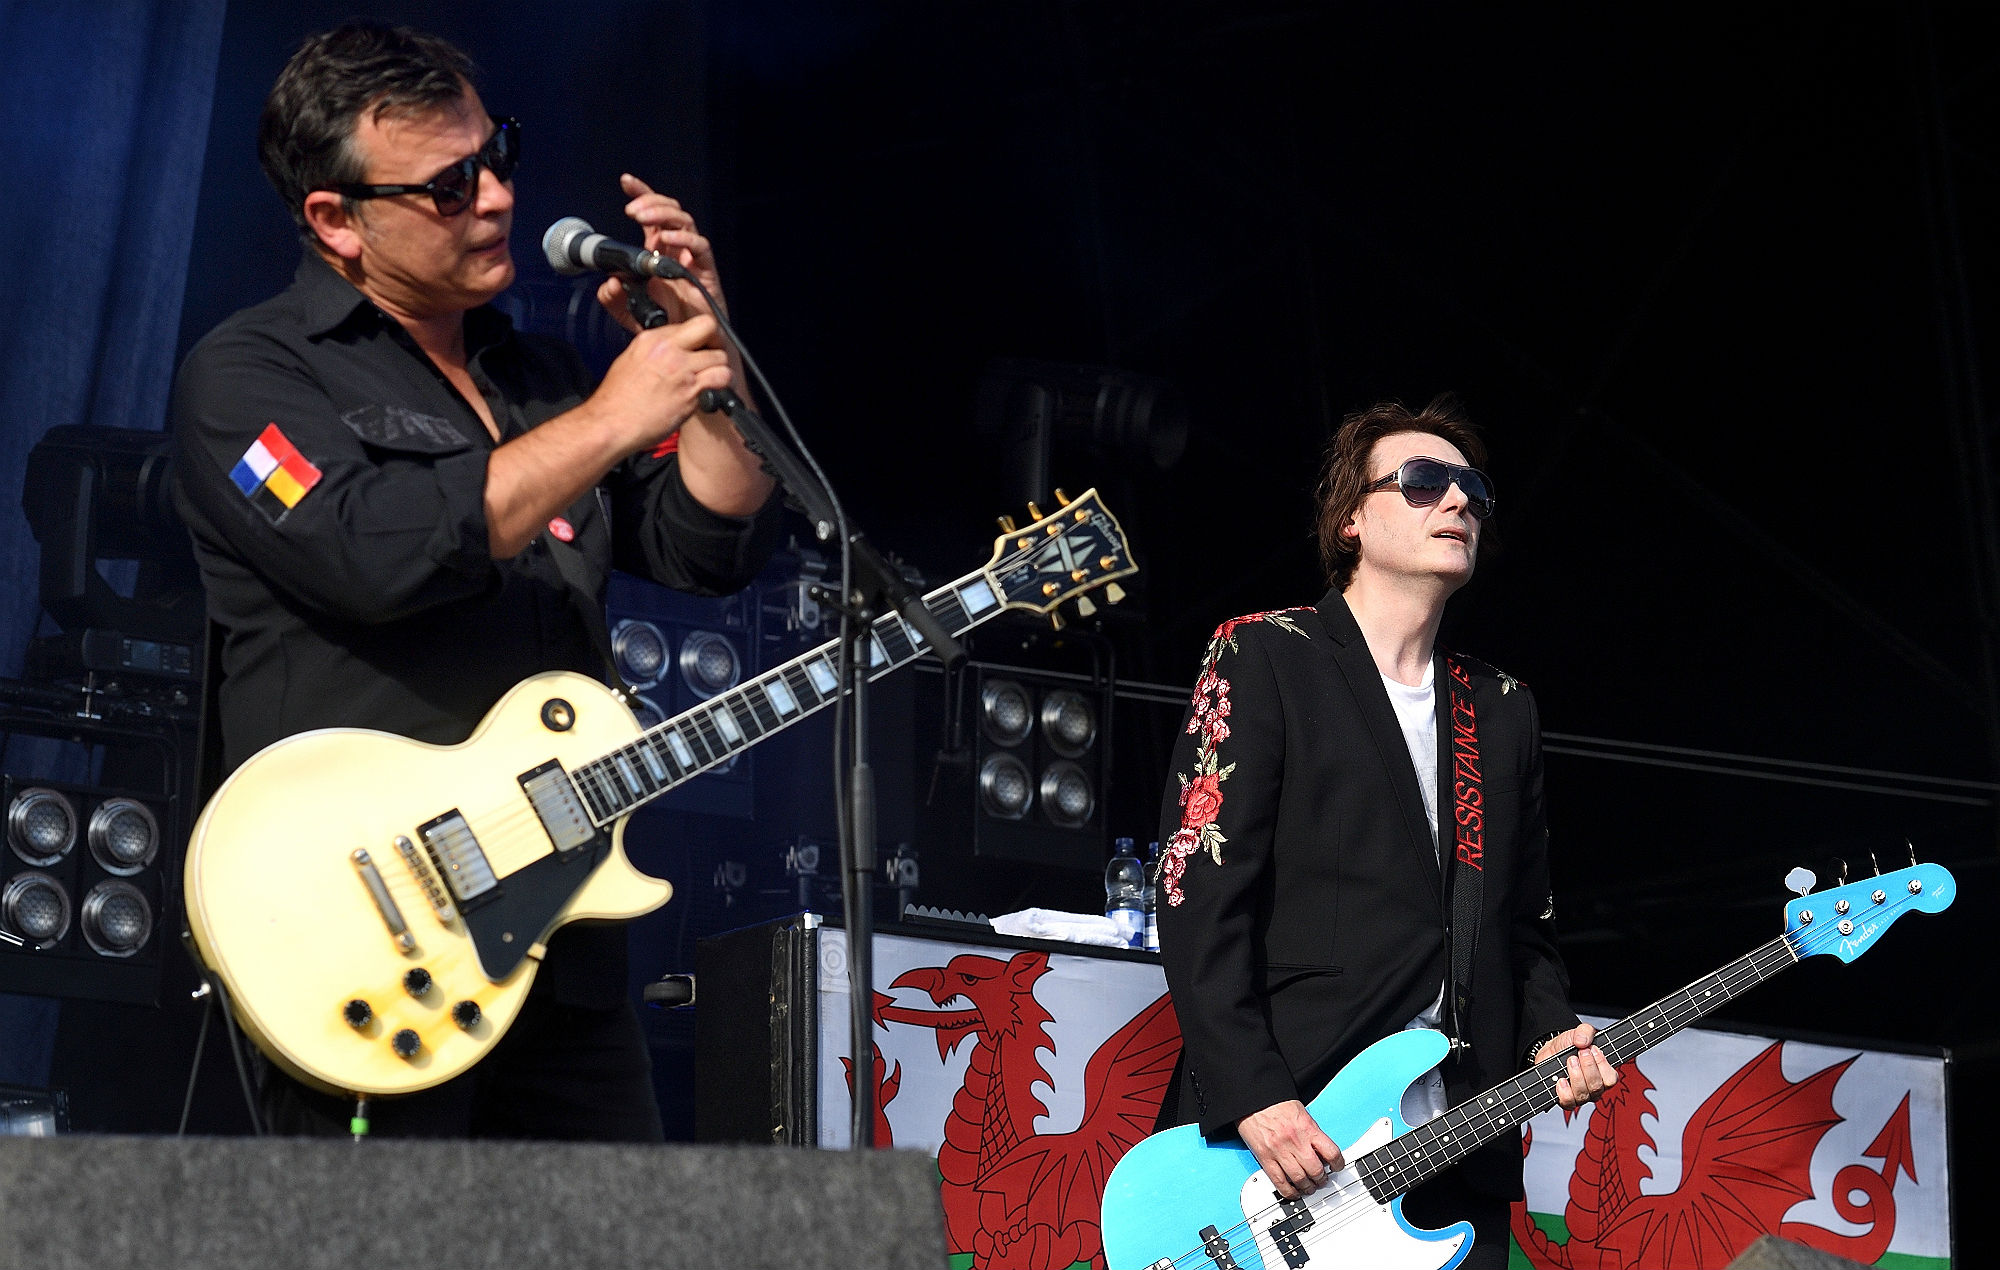 James Dean Bradfield and Nicky Wire of Manic Street Preachers perform on the main stage at RiZE Festival on August 17, 2018 in Chelmsford, United Kingdom. (Photo by Gus Stewart/Redferns)